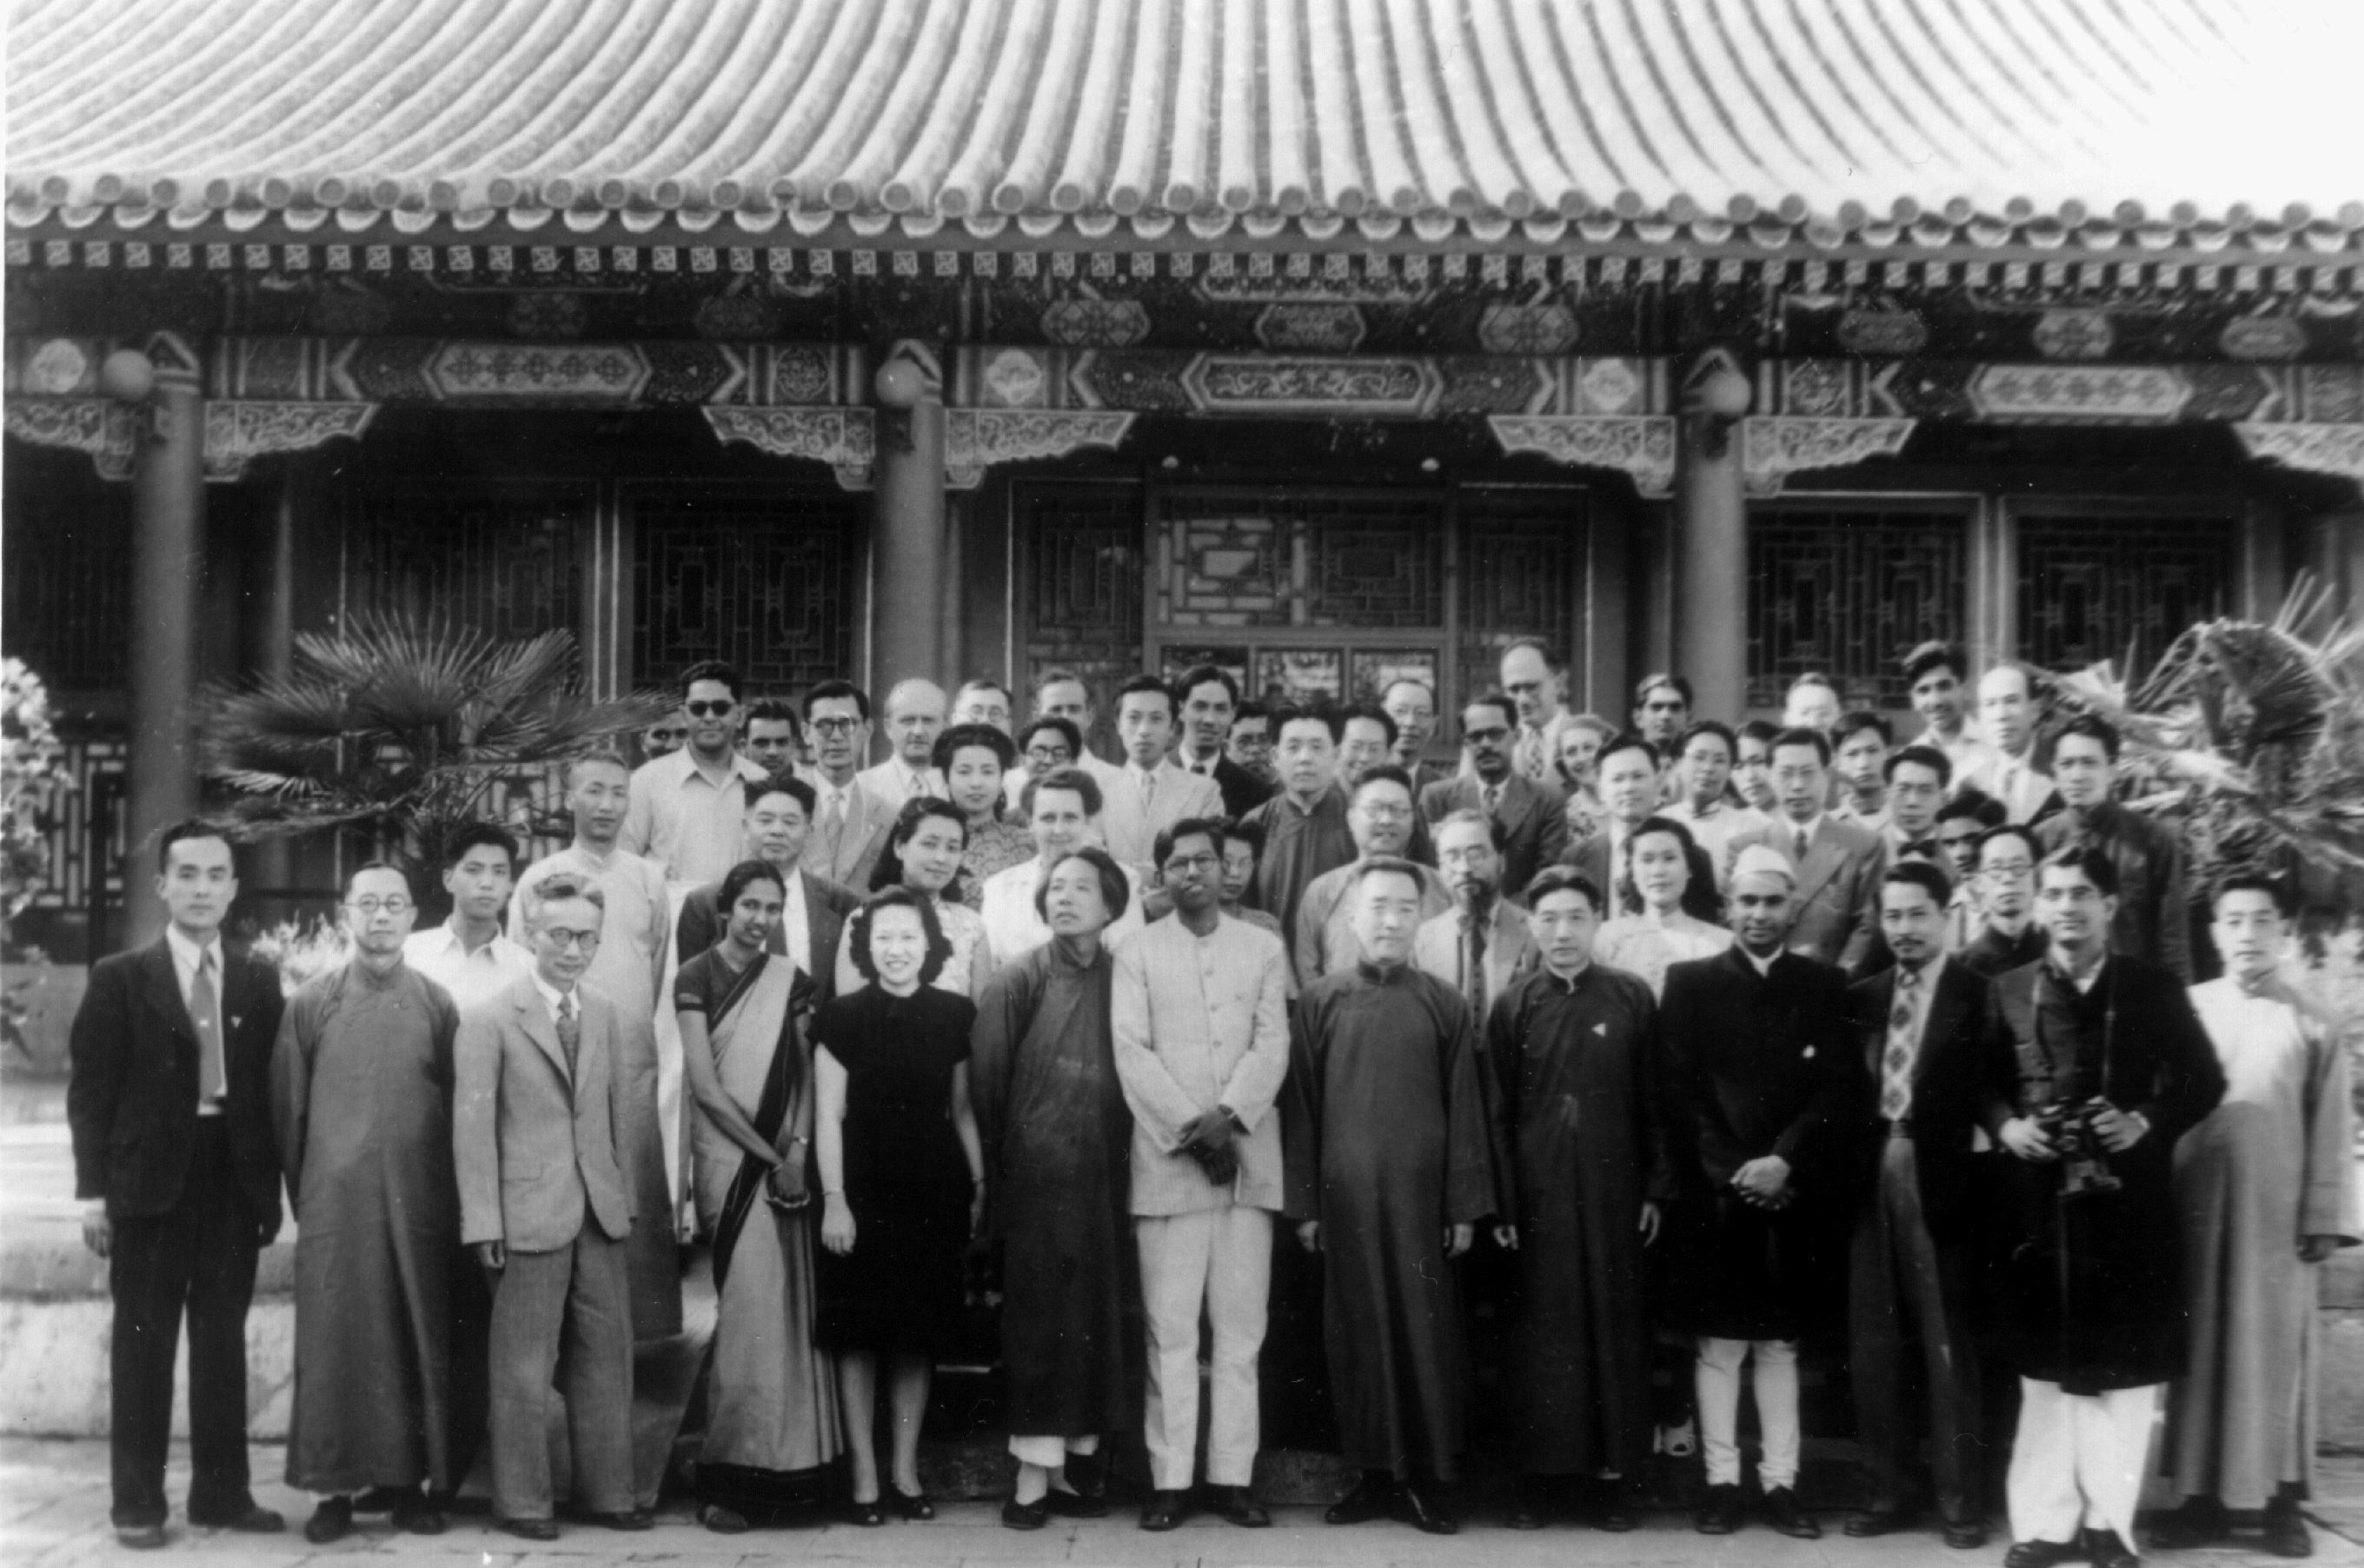 Empson (second row, right of center) with colleagues and guests at Peking University